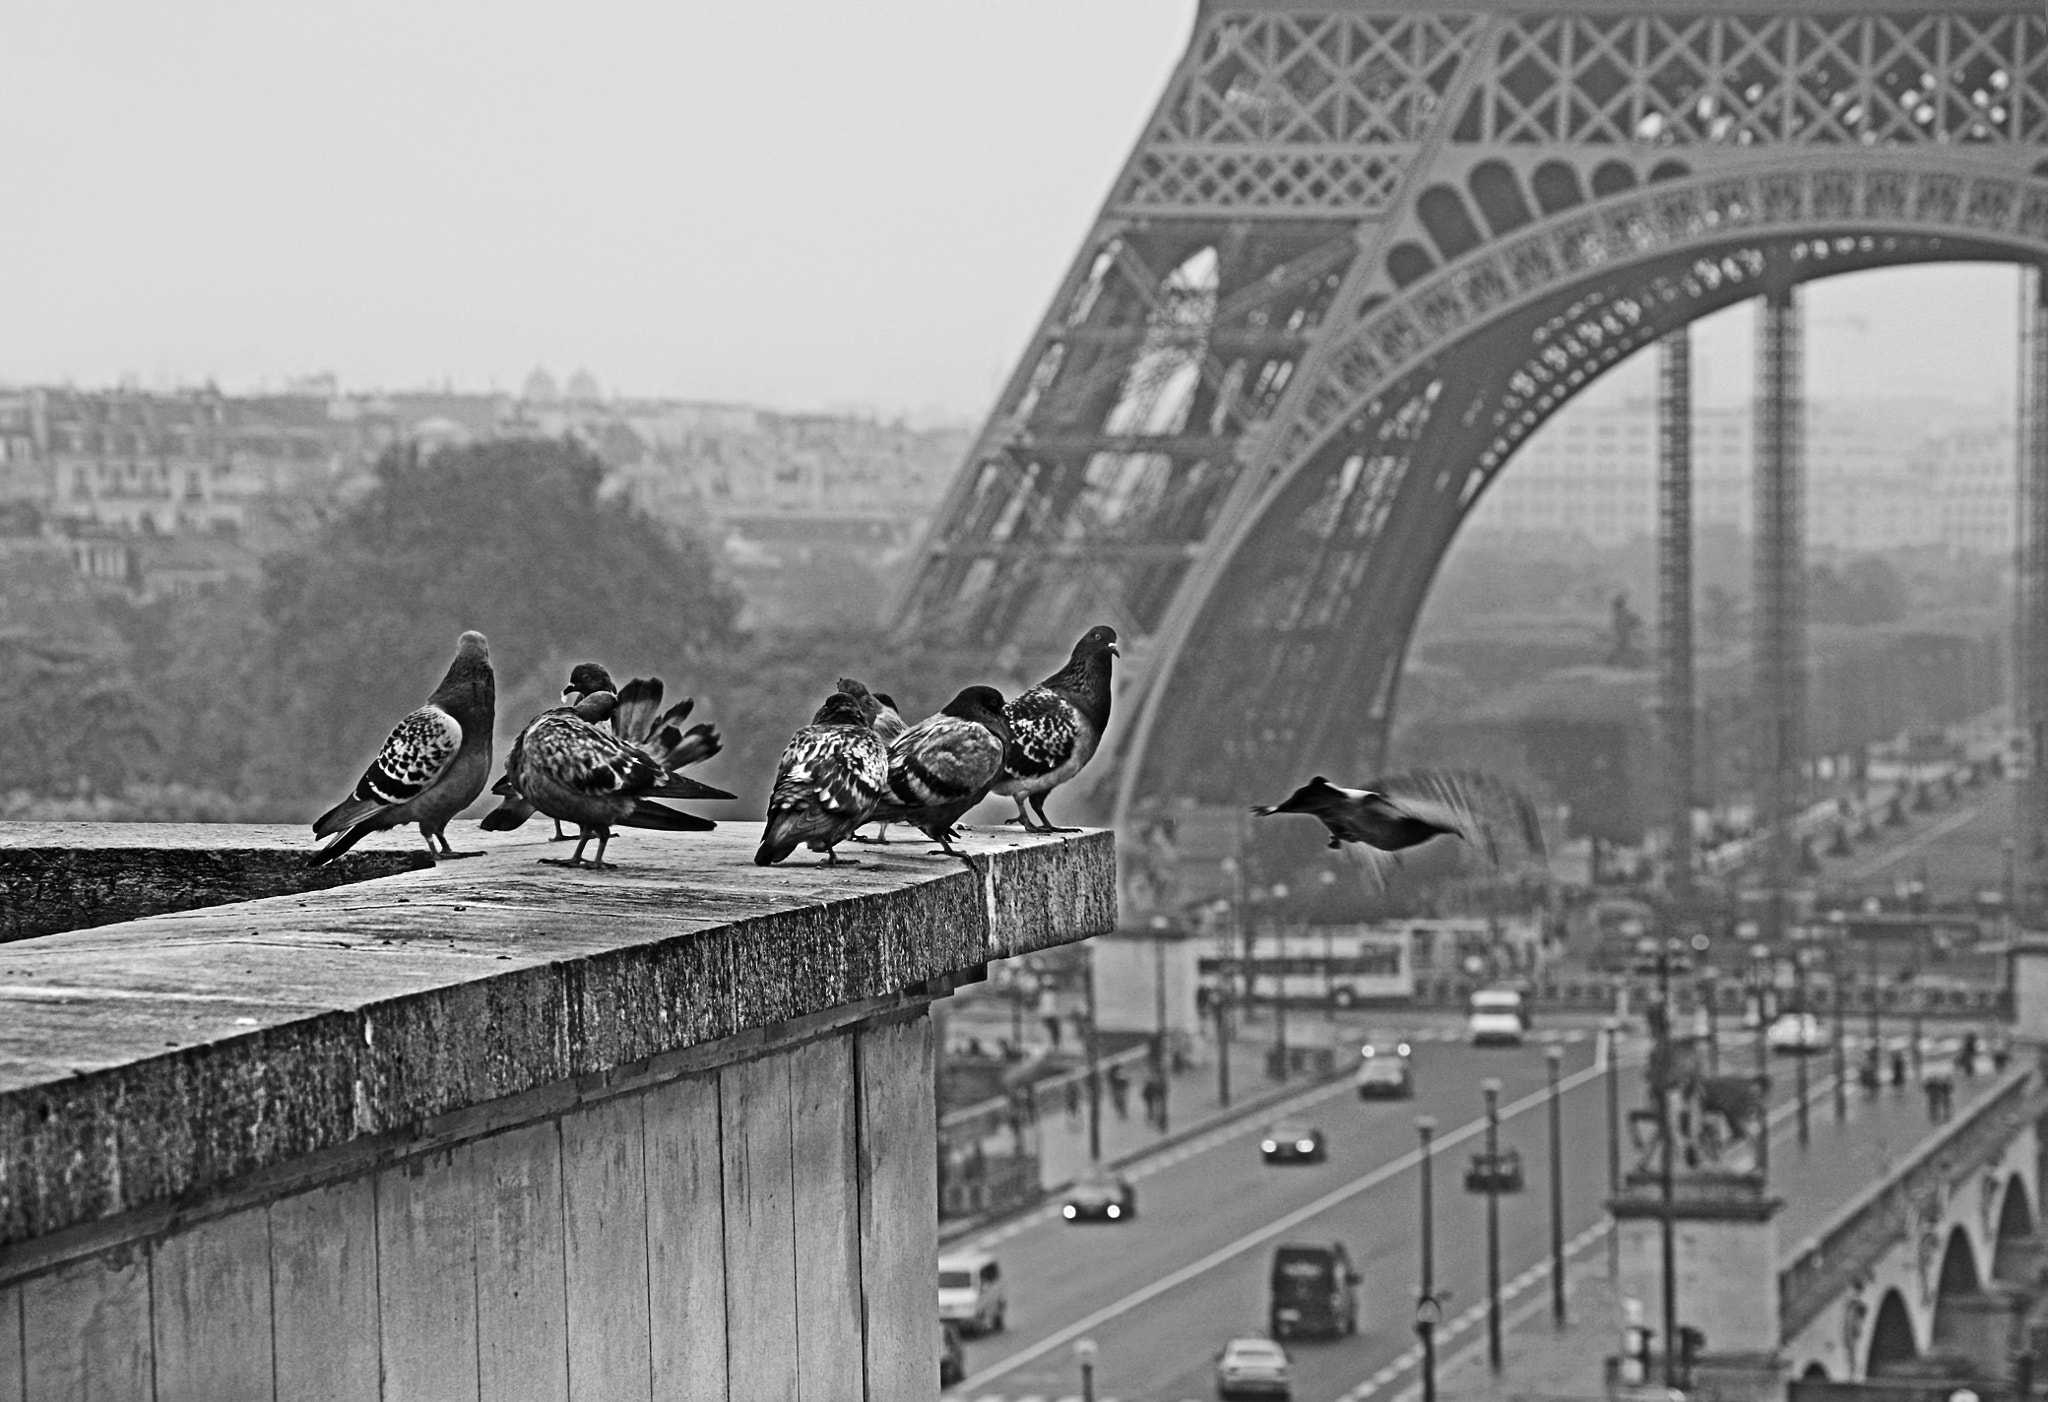 Photograph pigeons parisiens by Claudia Moeckel on 500px